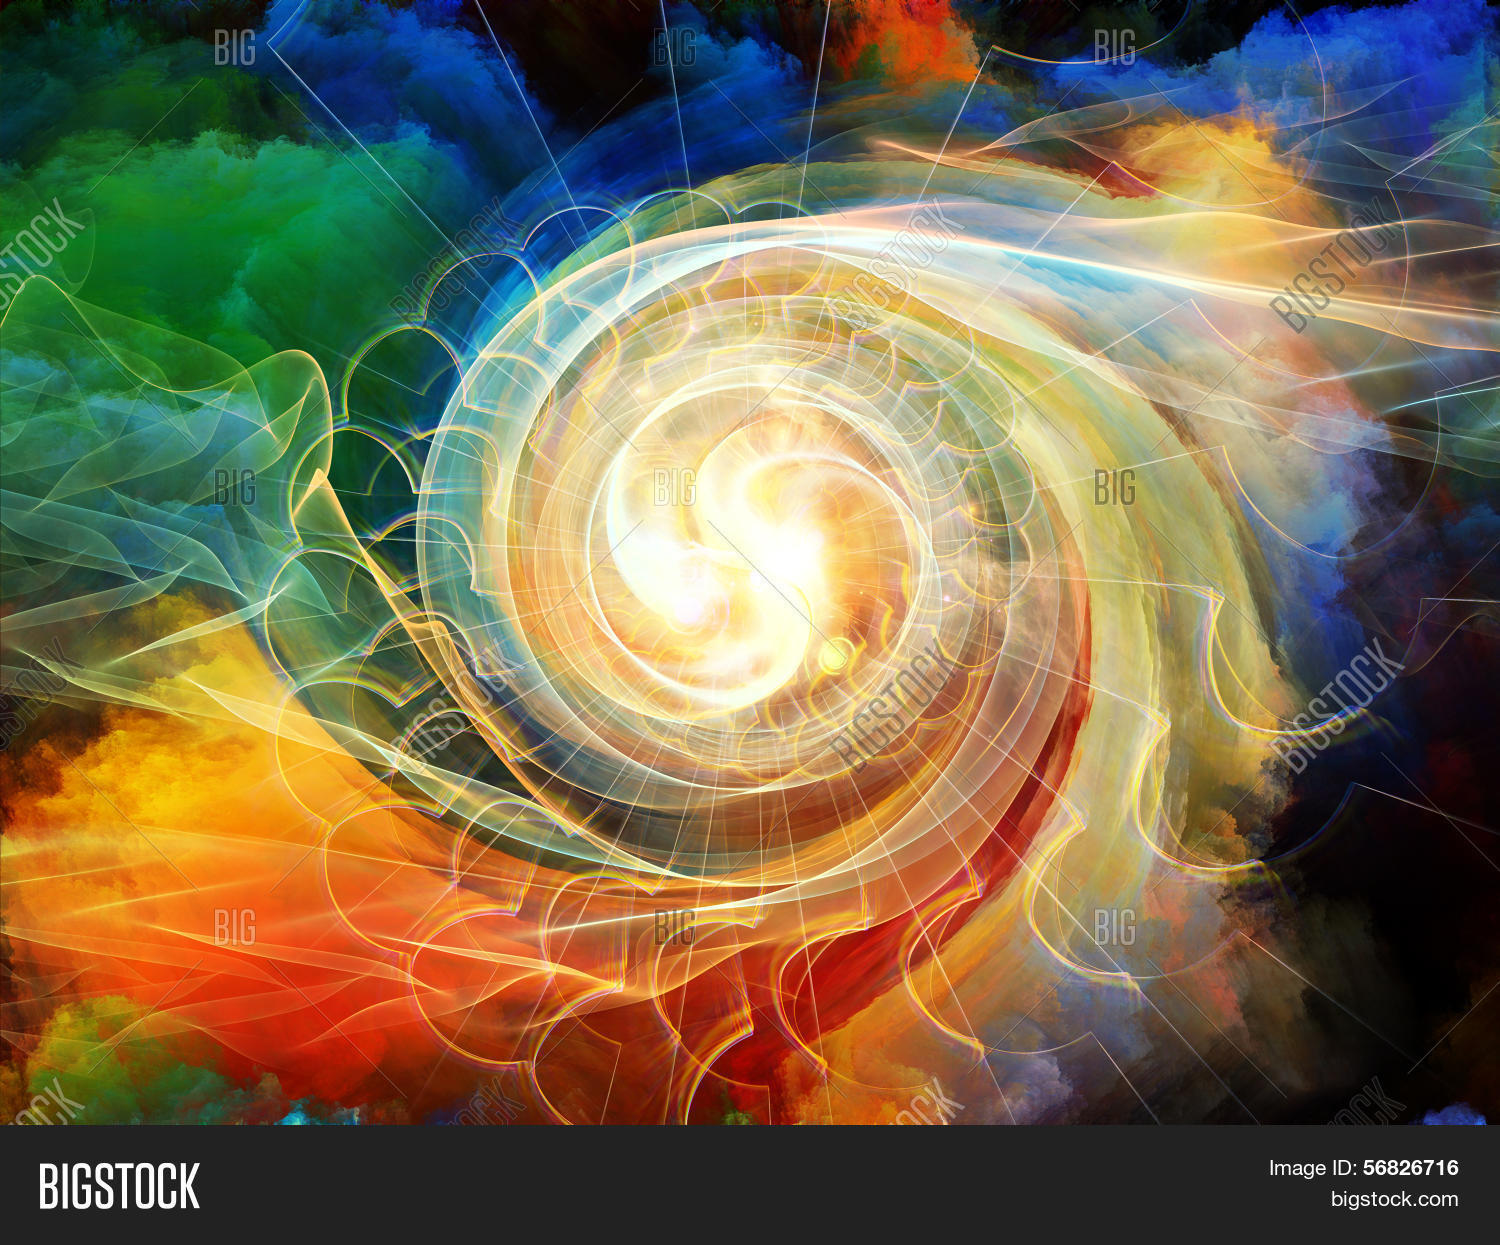 Inside Motion Vortex Image & Photo (Free Trial) | Bigstock